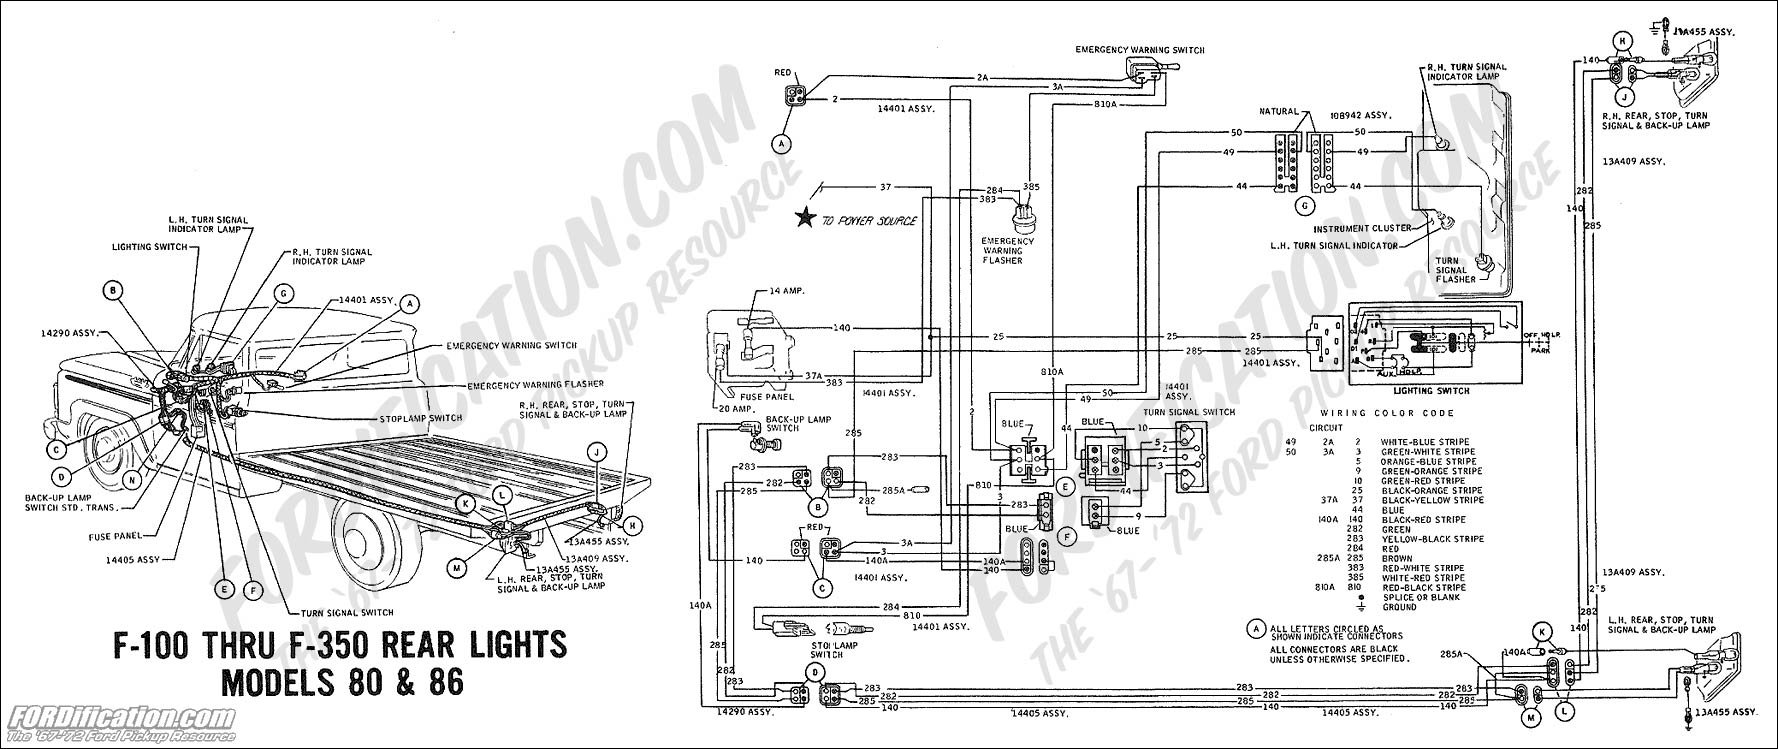 hight resolution of 86 ford f250 wiring diagram tow package wiring diagram86 ford f250 wiring diagram tow package wiring